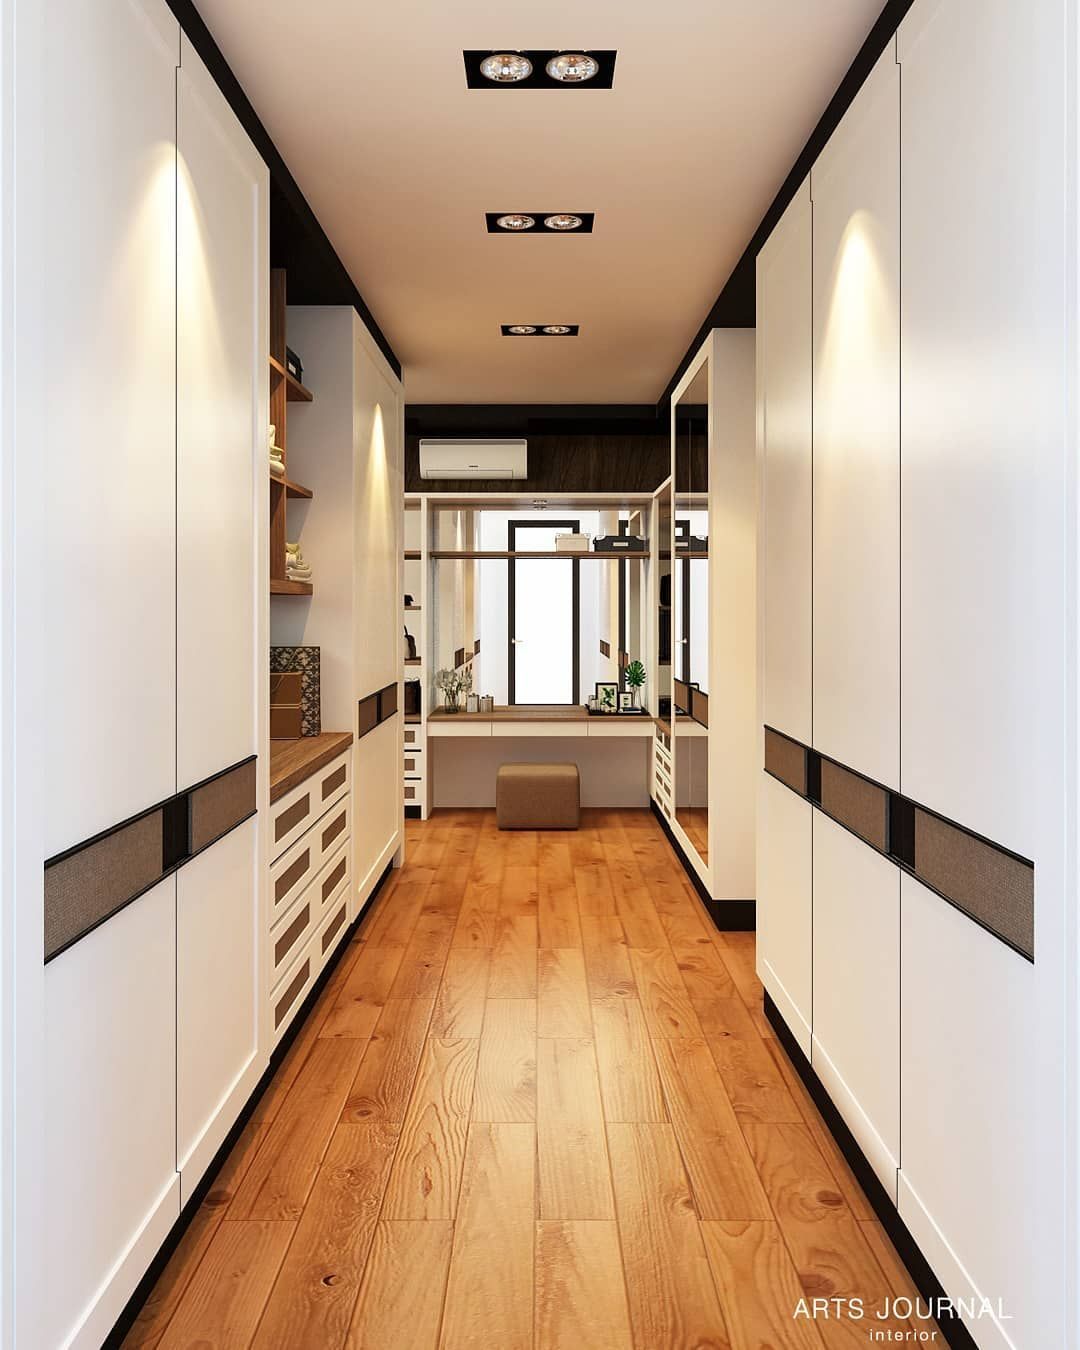 New The 10 Best Home Decor With Pictures Visual Image Mr A Project Residential Walk In Closet Location Citr Home Decor House Design Interior